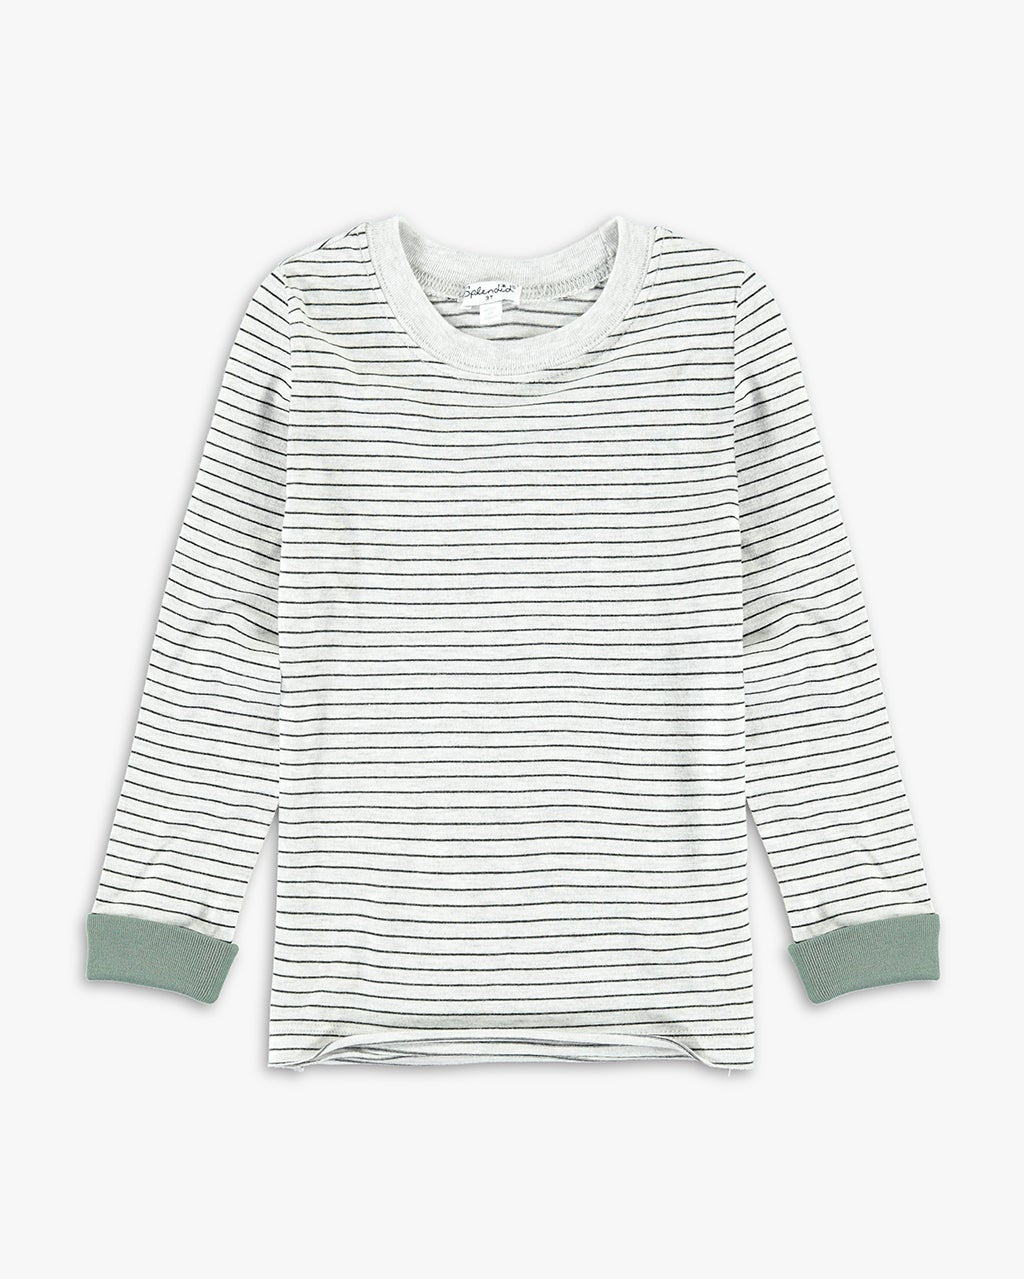 Splendid Little Boy Striped Long Sleeve Tee